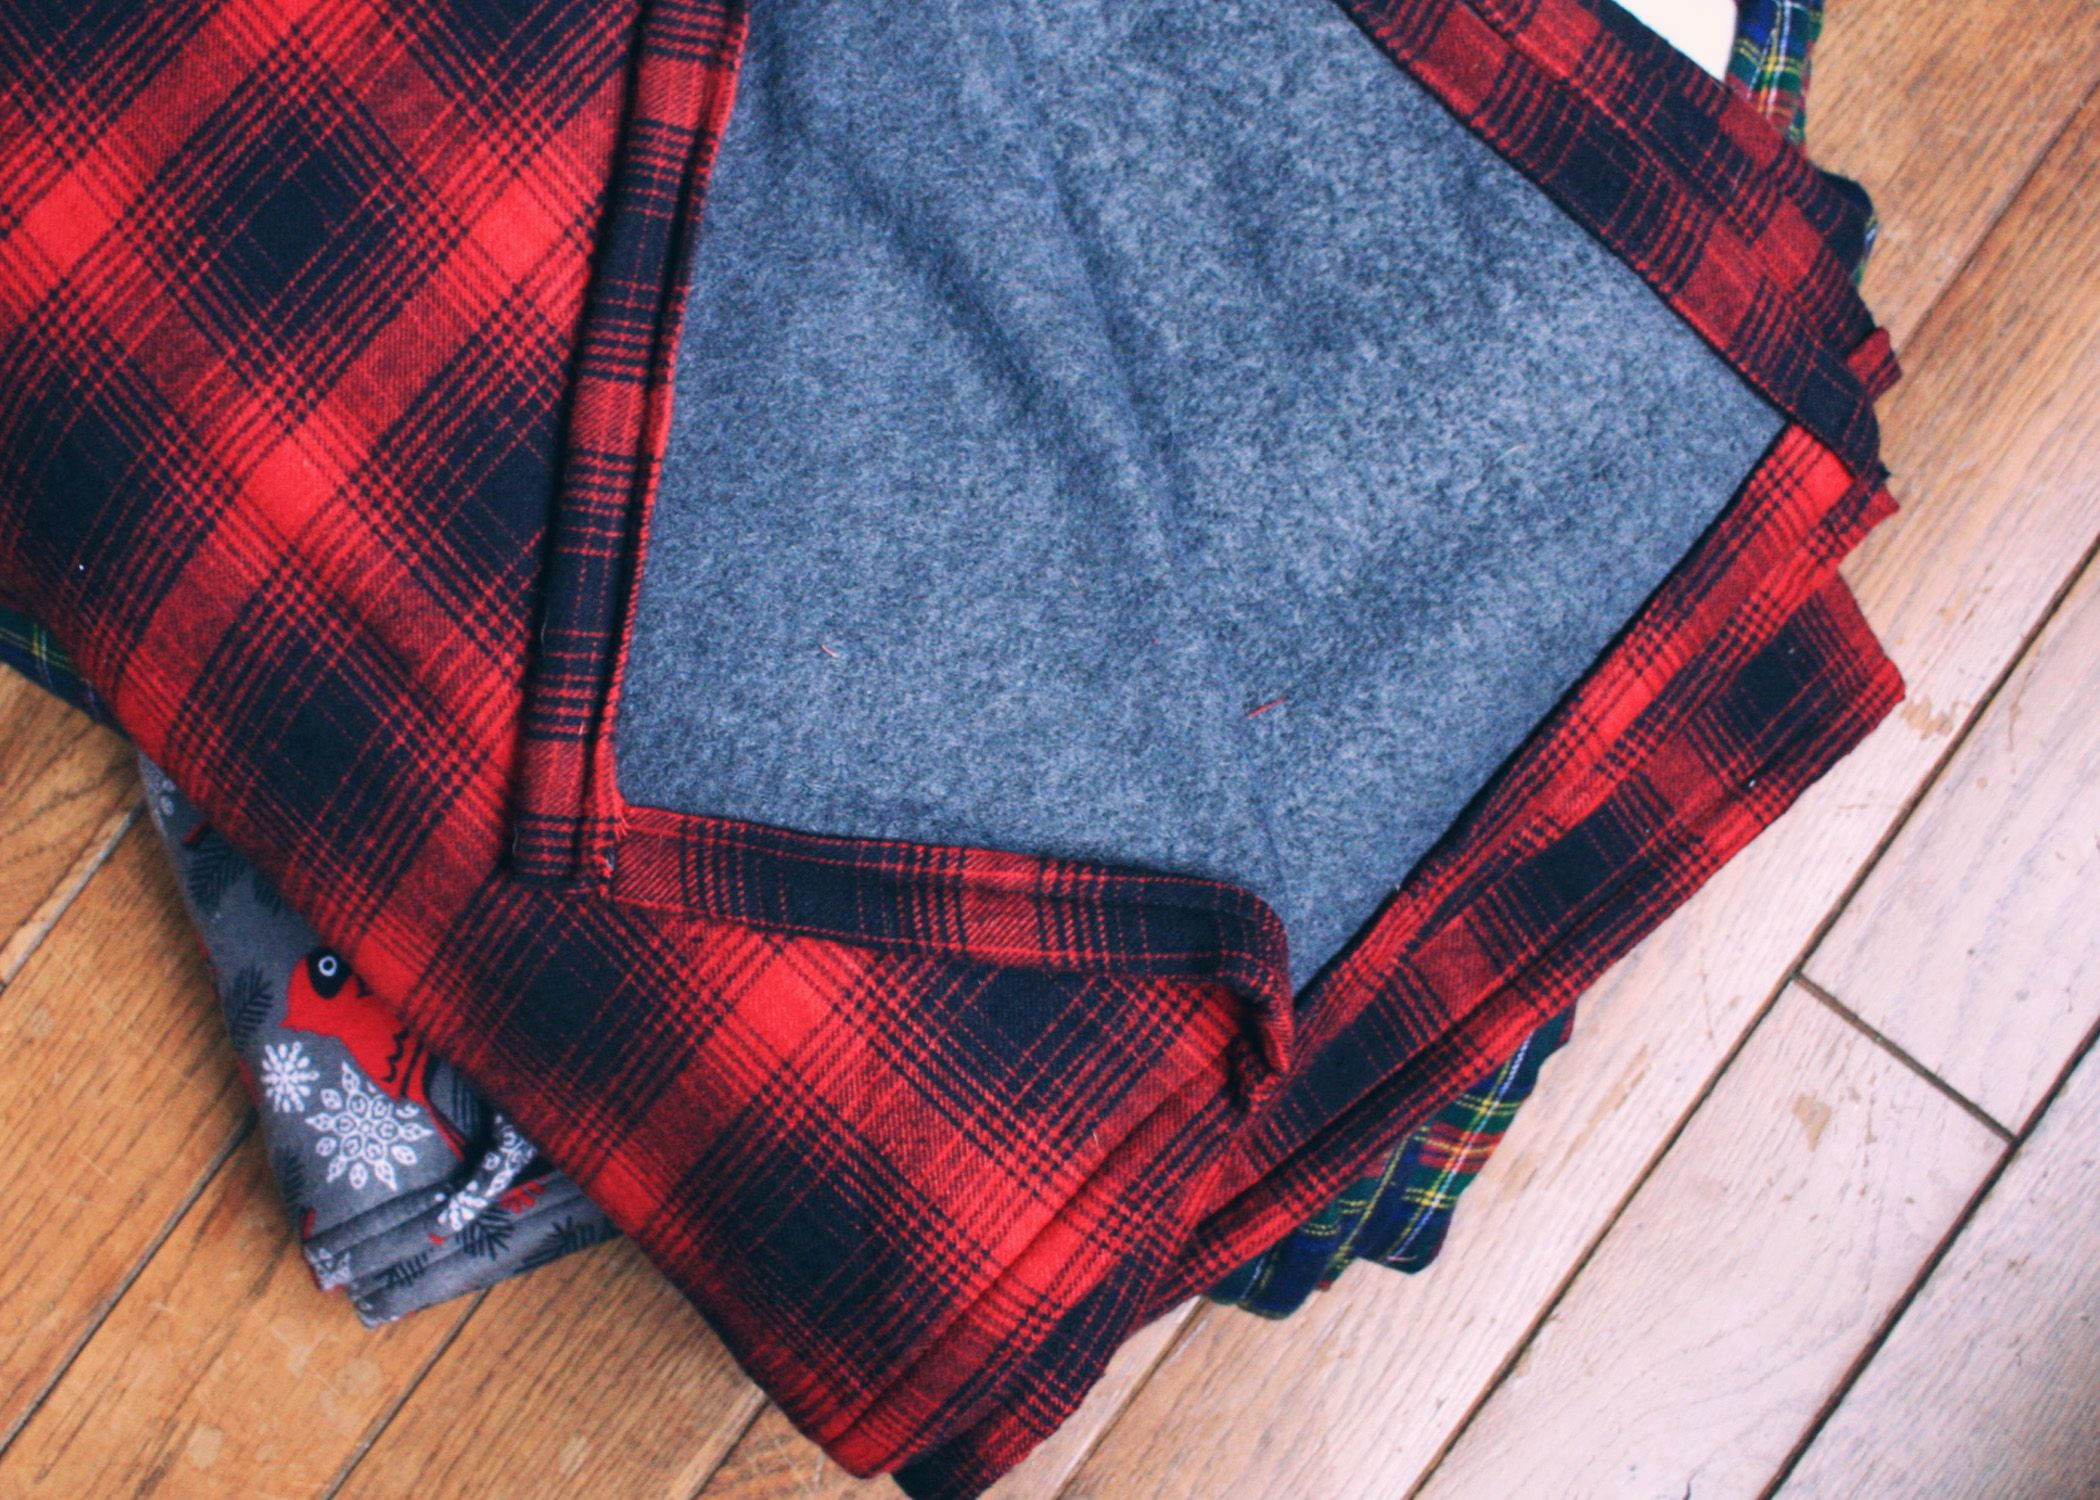 Diy Flannel Throw Great Christmas Gift Diy Gifts For Men Easy Sewing Projects Easy Sewing